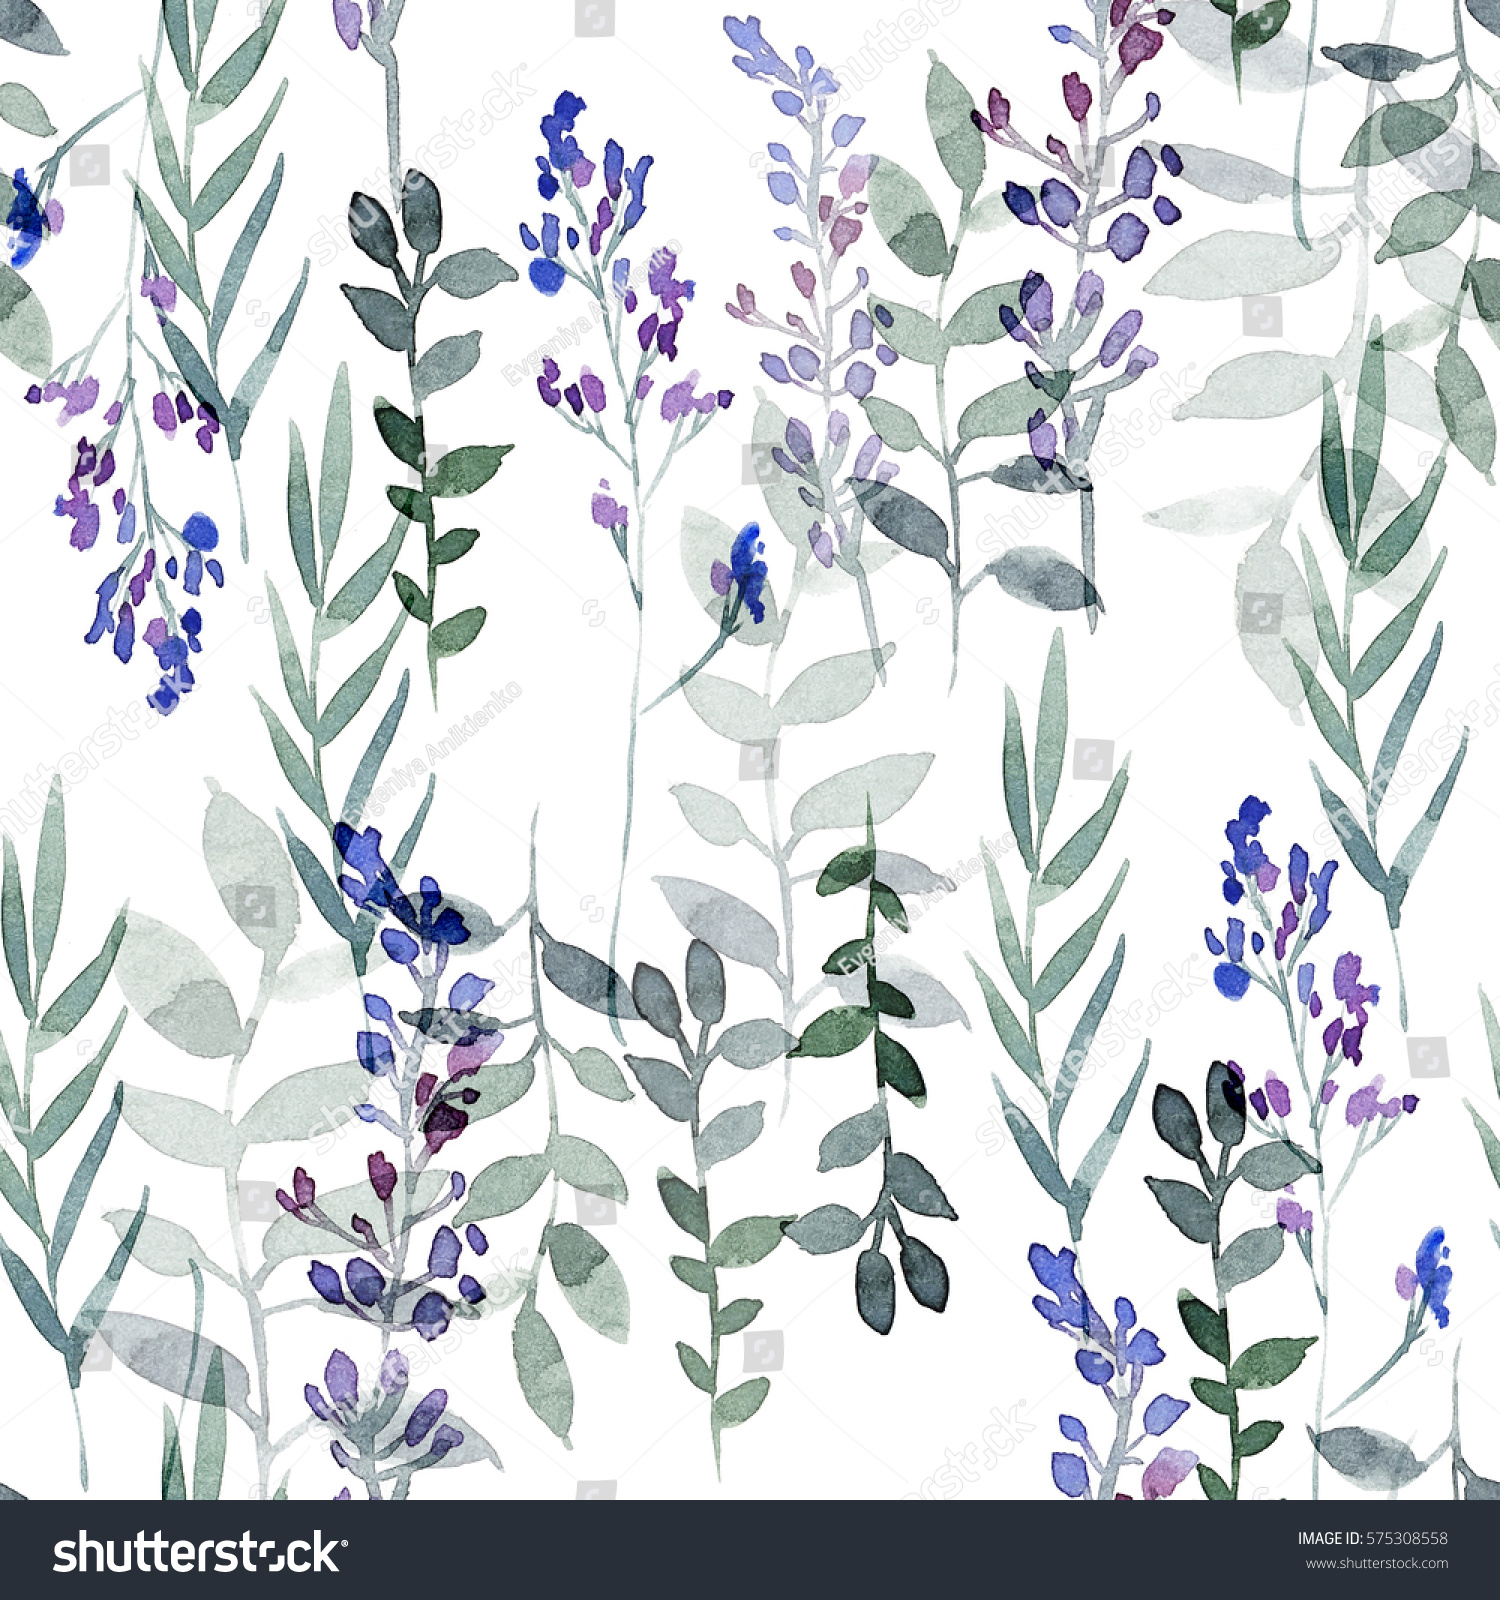 Hand Drawing Seamless Pattern Of Flowers In Blue And Purple Colors Watercolor Illustration